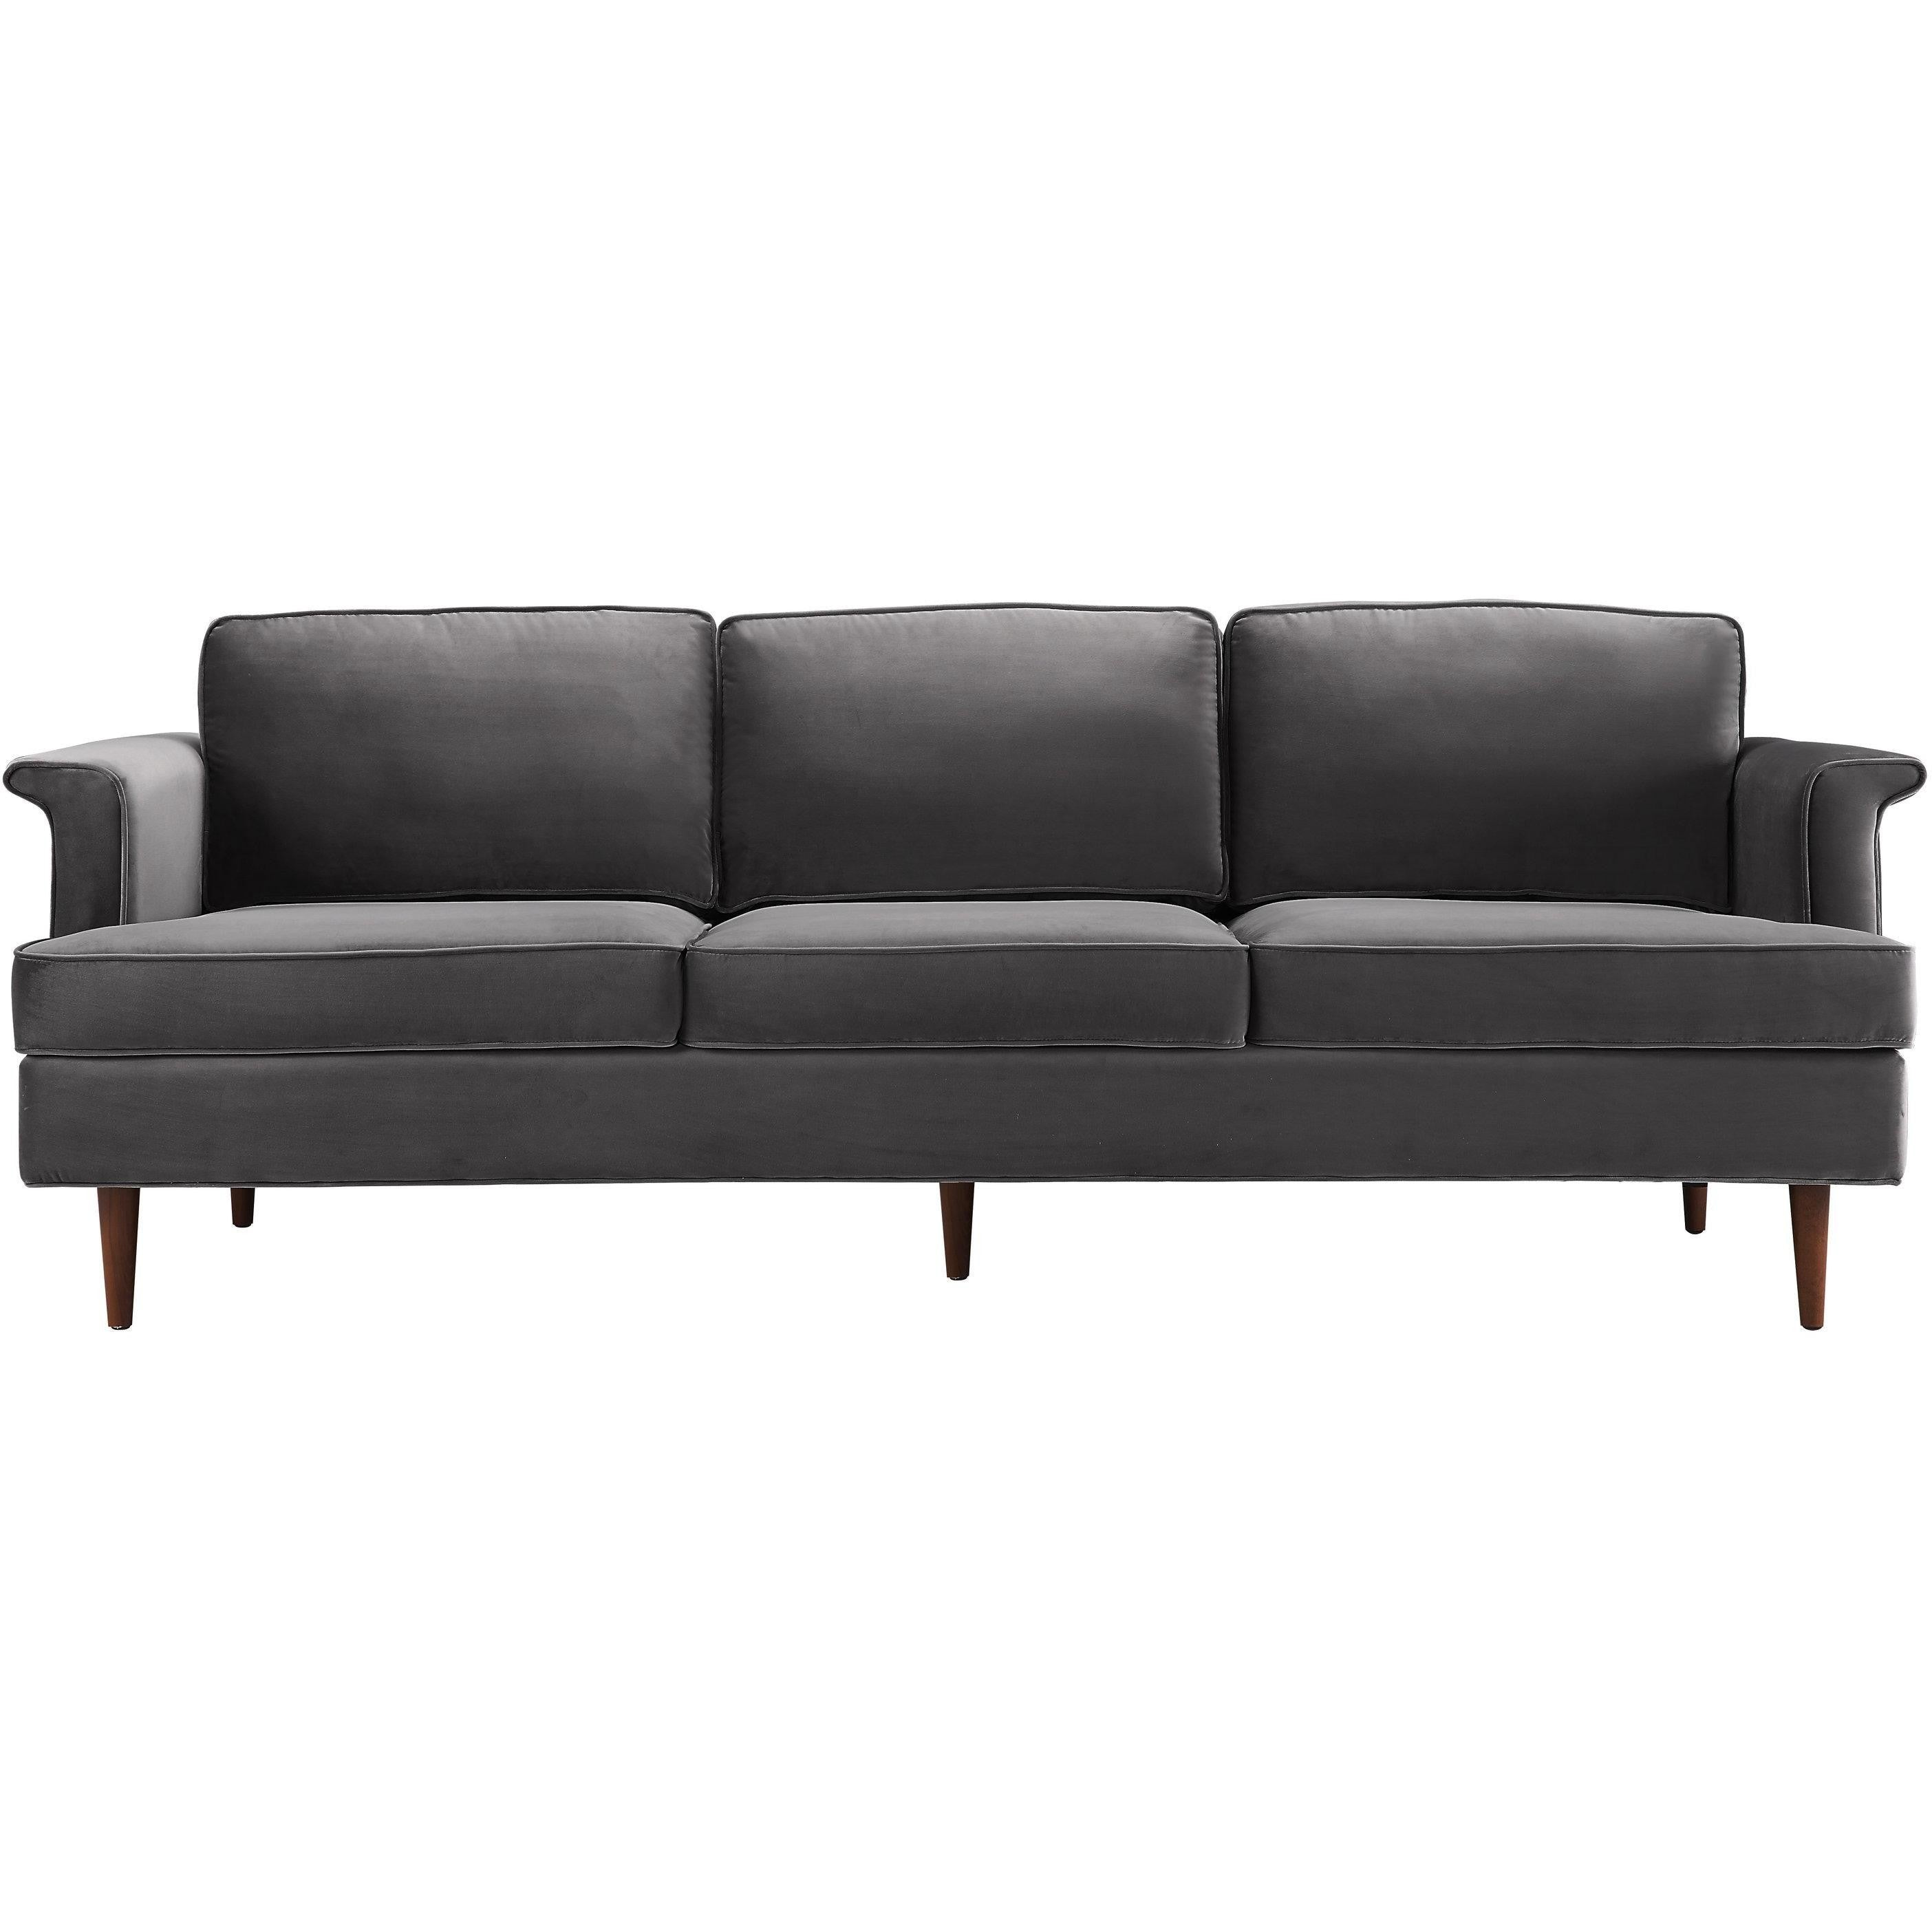 Outdoor sofas and sectionals shoppe boulevard sofas sectionals parisarafo Choice Image